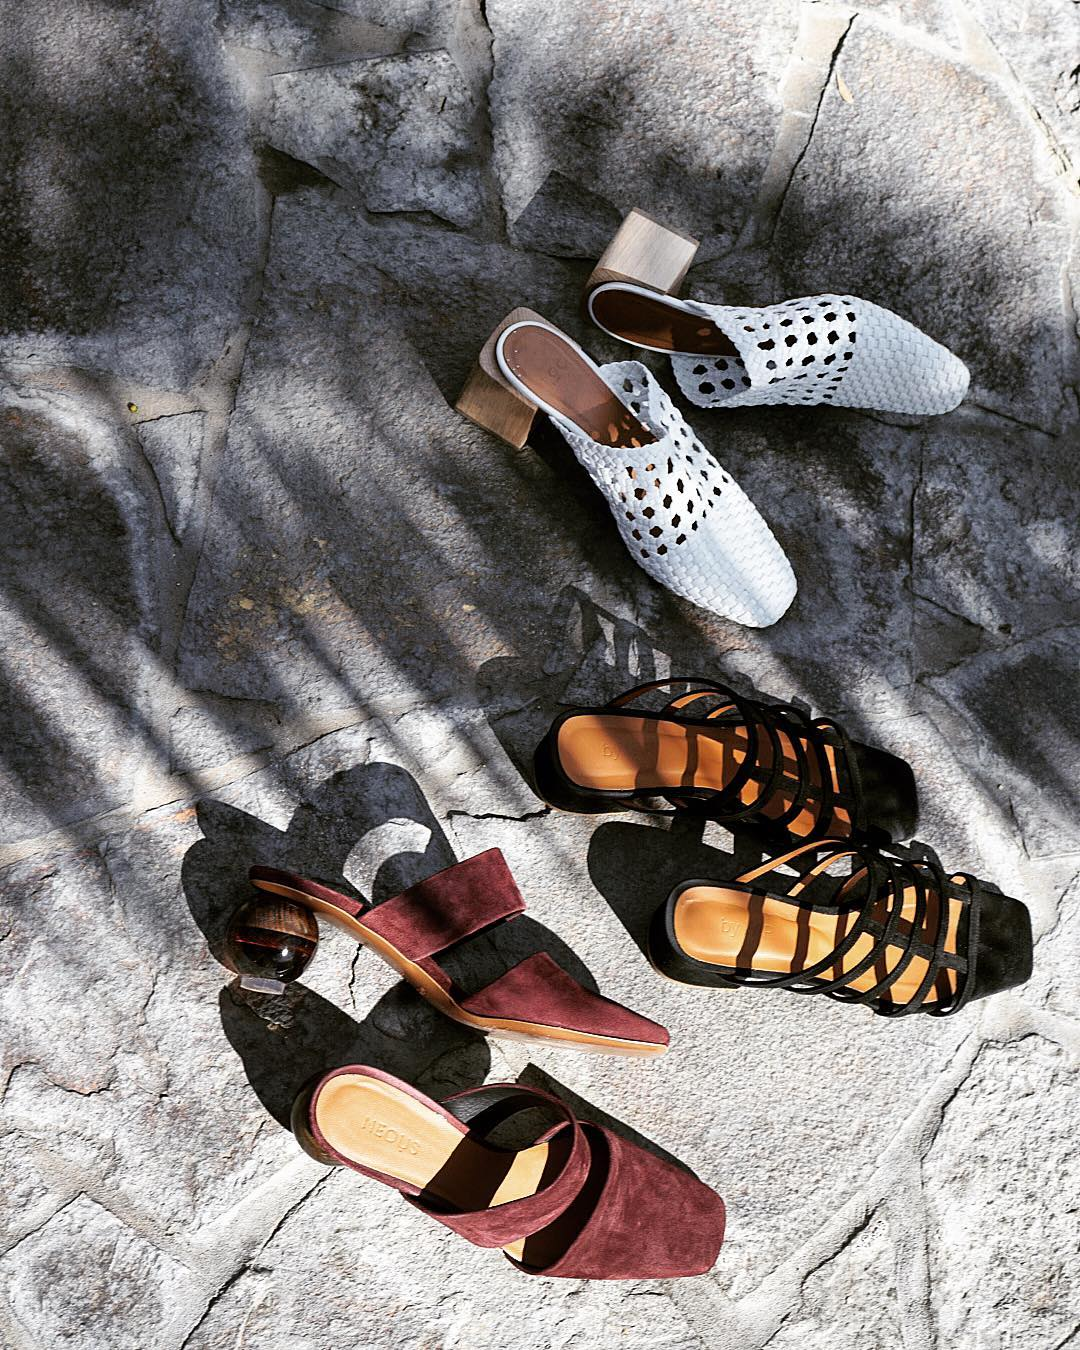 Mule shoes - The most desirable shoe design this year